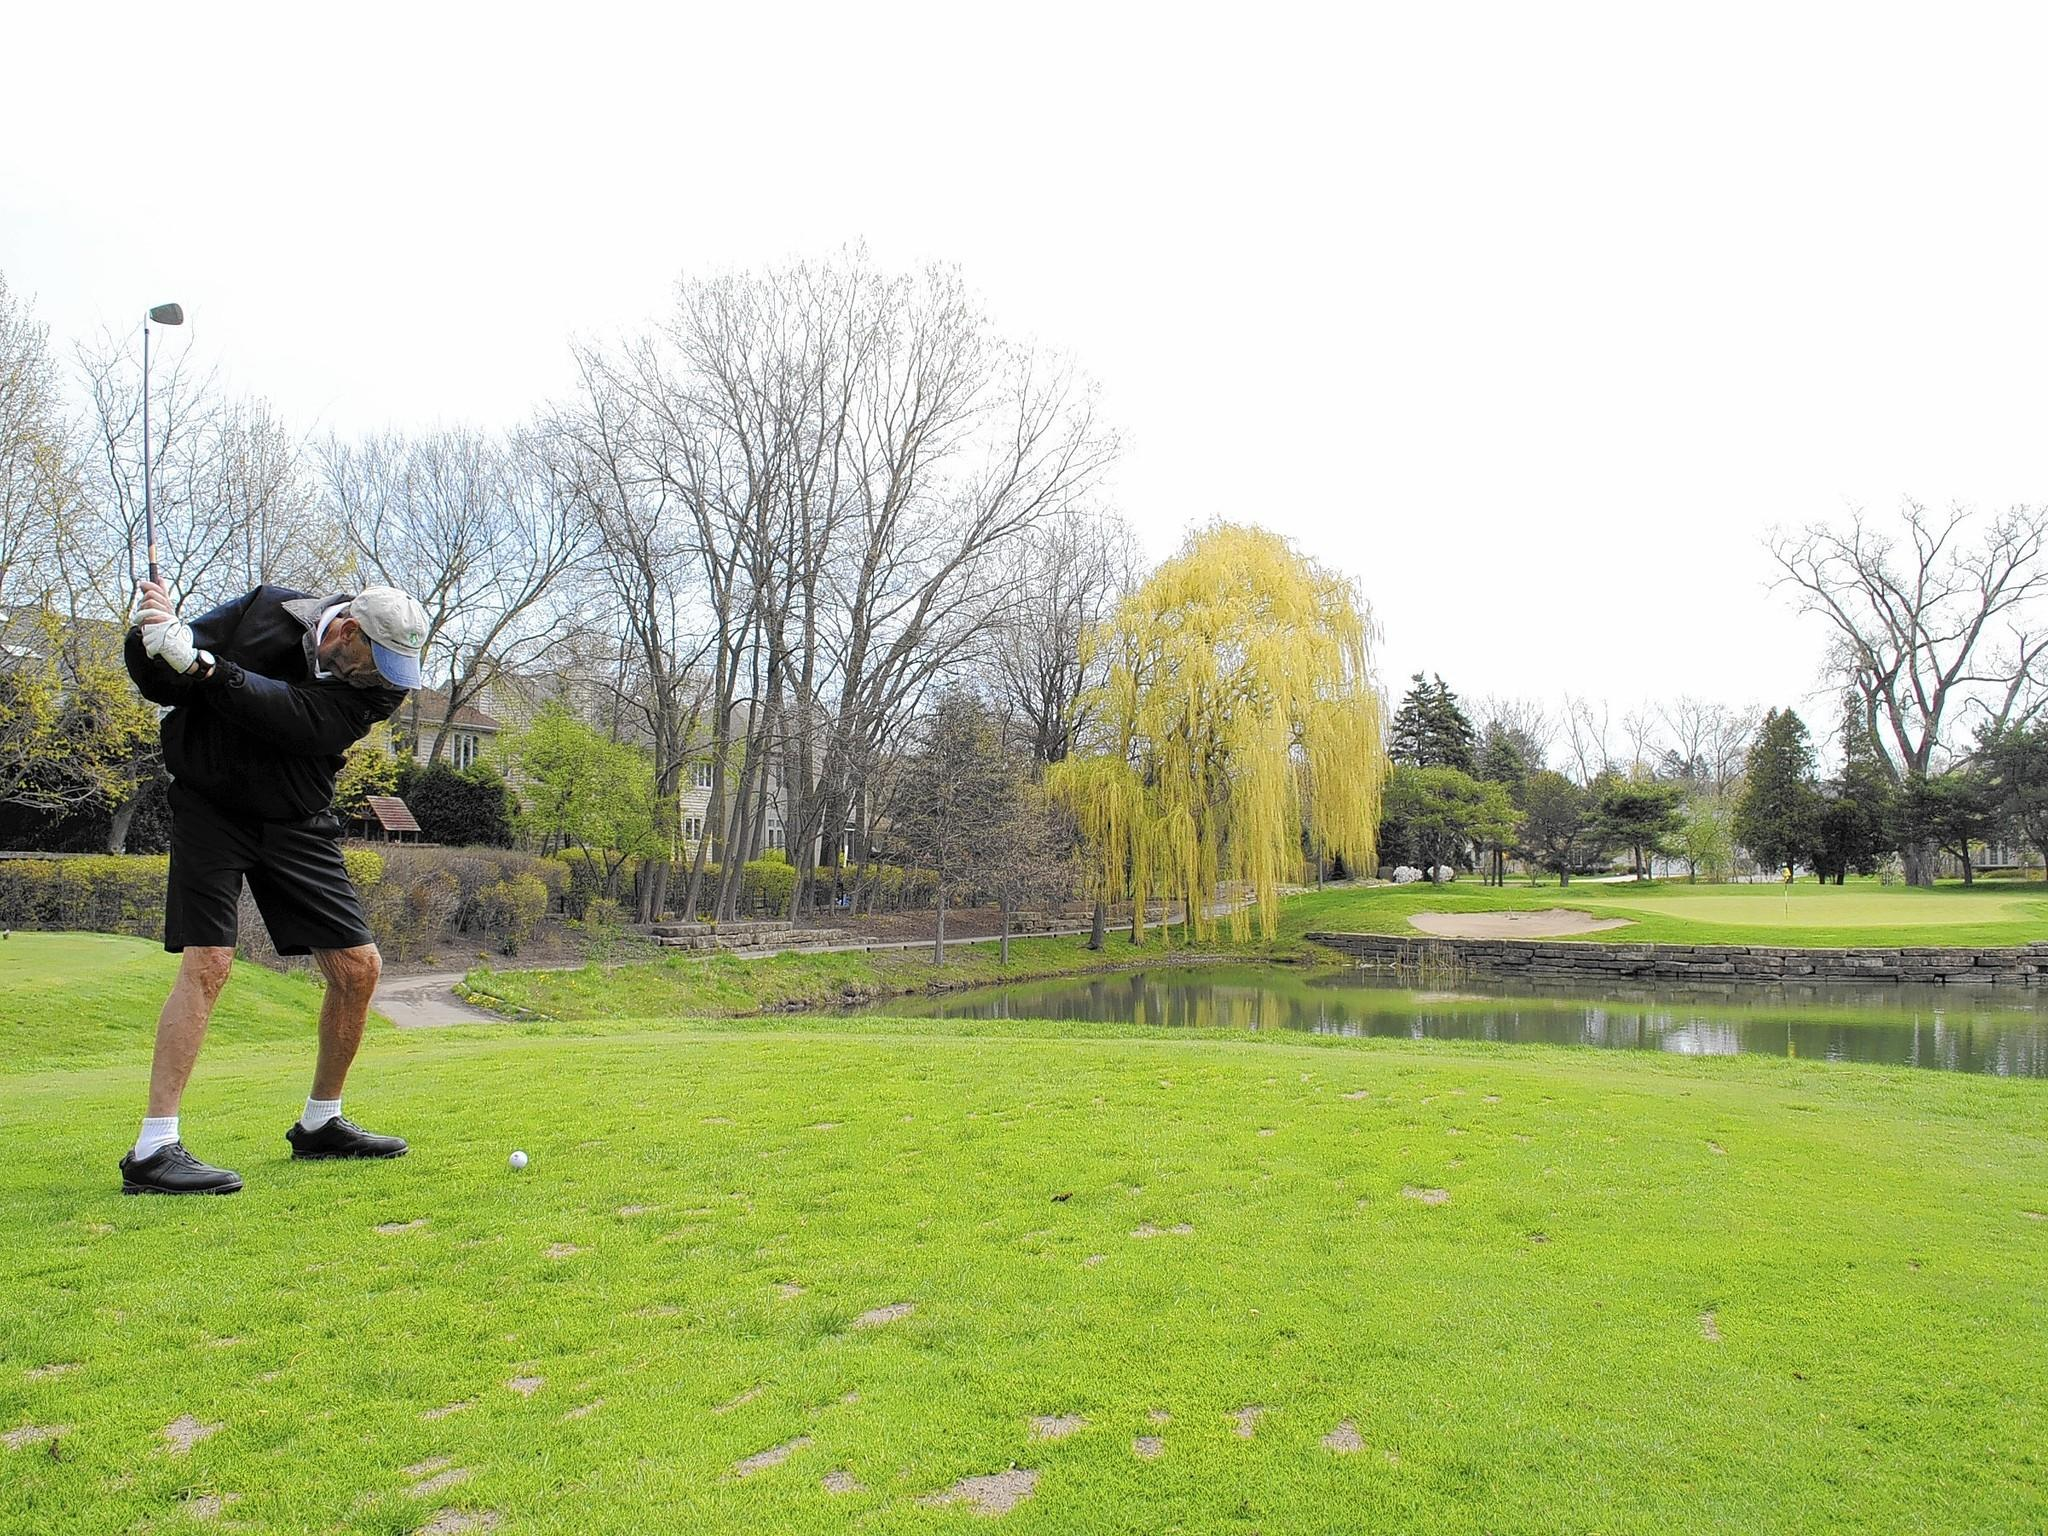 In the Tribune file photo, a golfer tees off on the par-3 5th hole at Highland Park Country Club in May 2013.